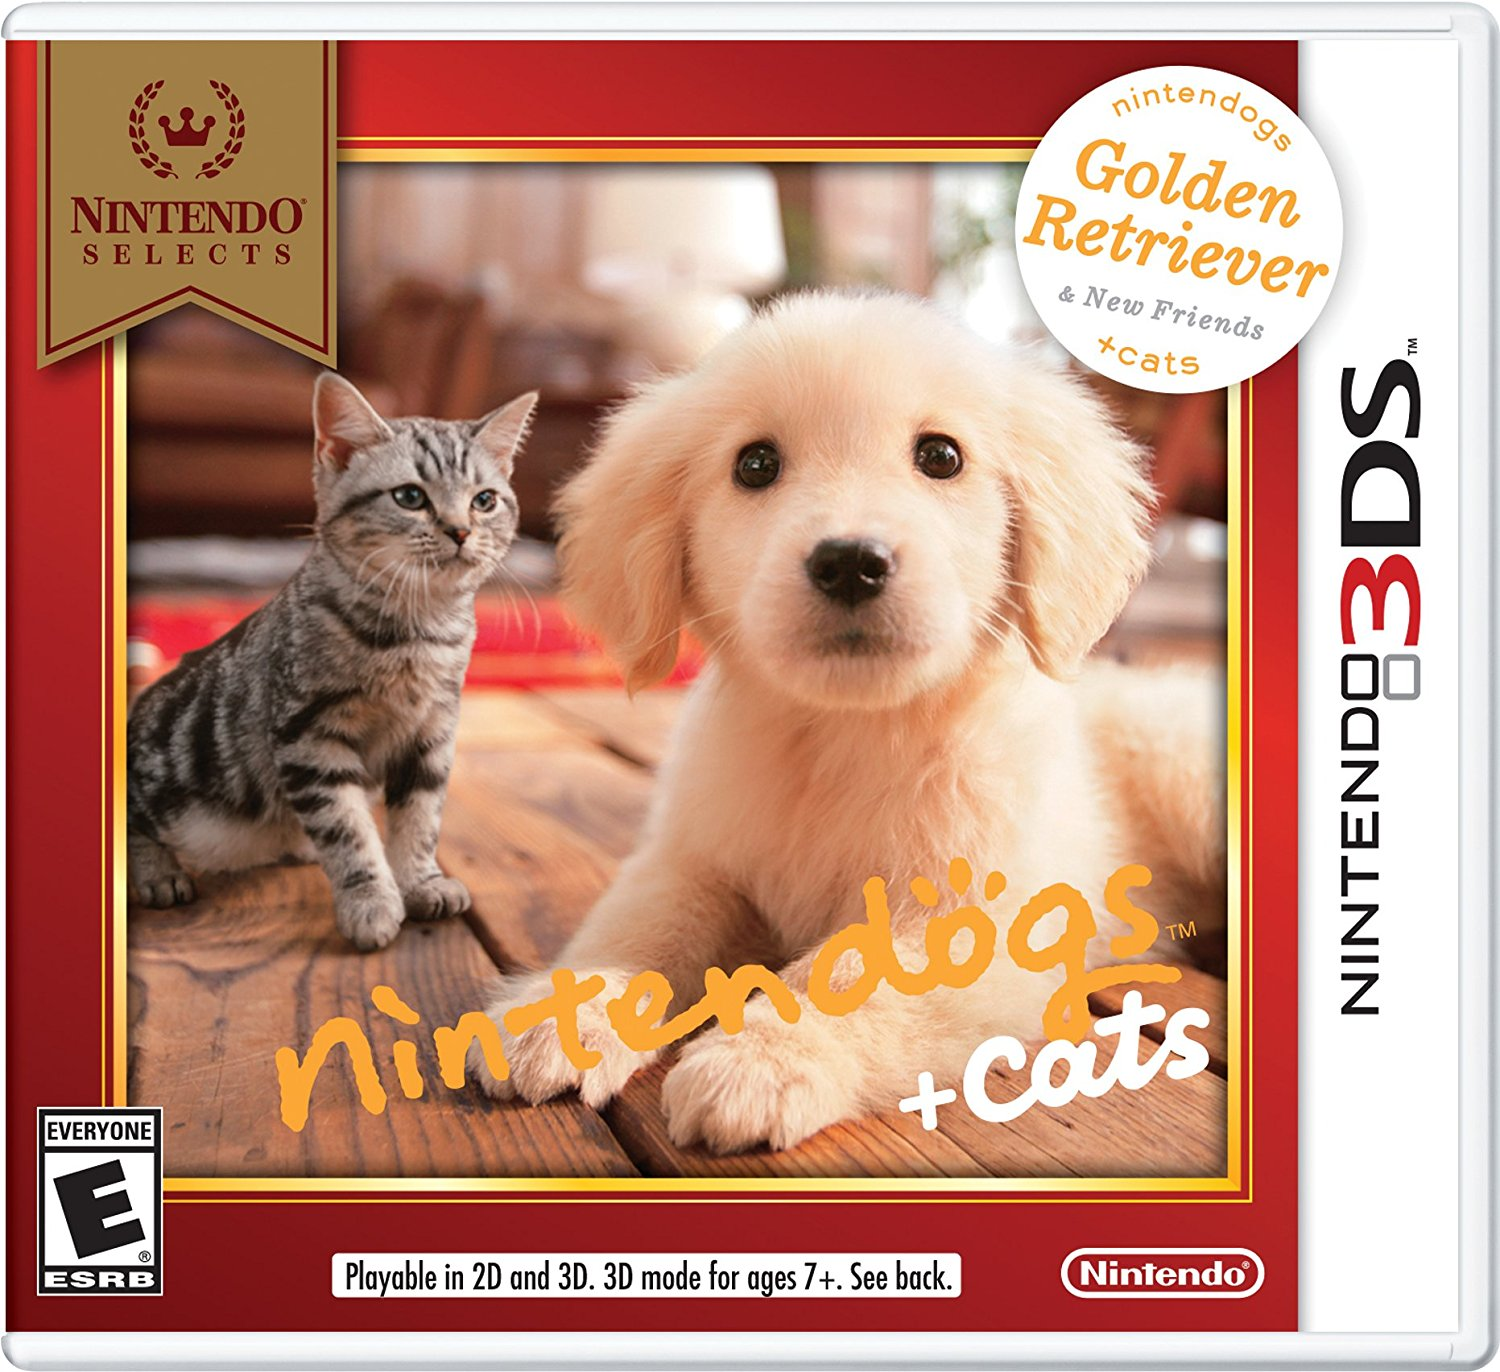 Nintendo DS Games for a 12 Year Old Girl